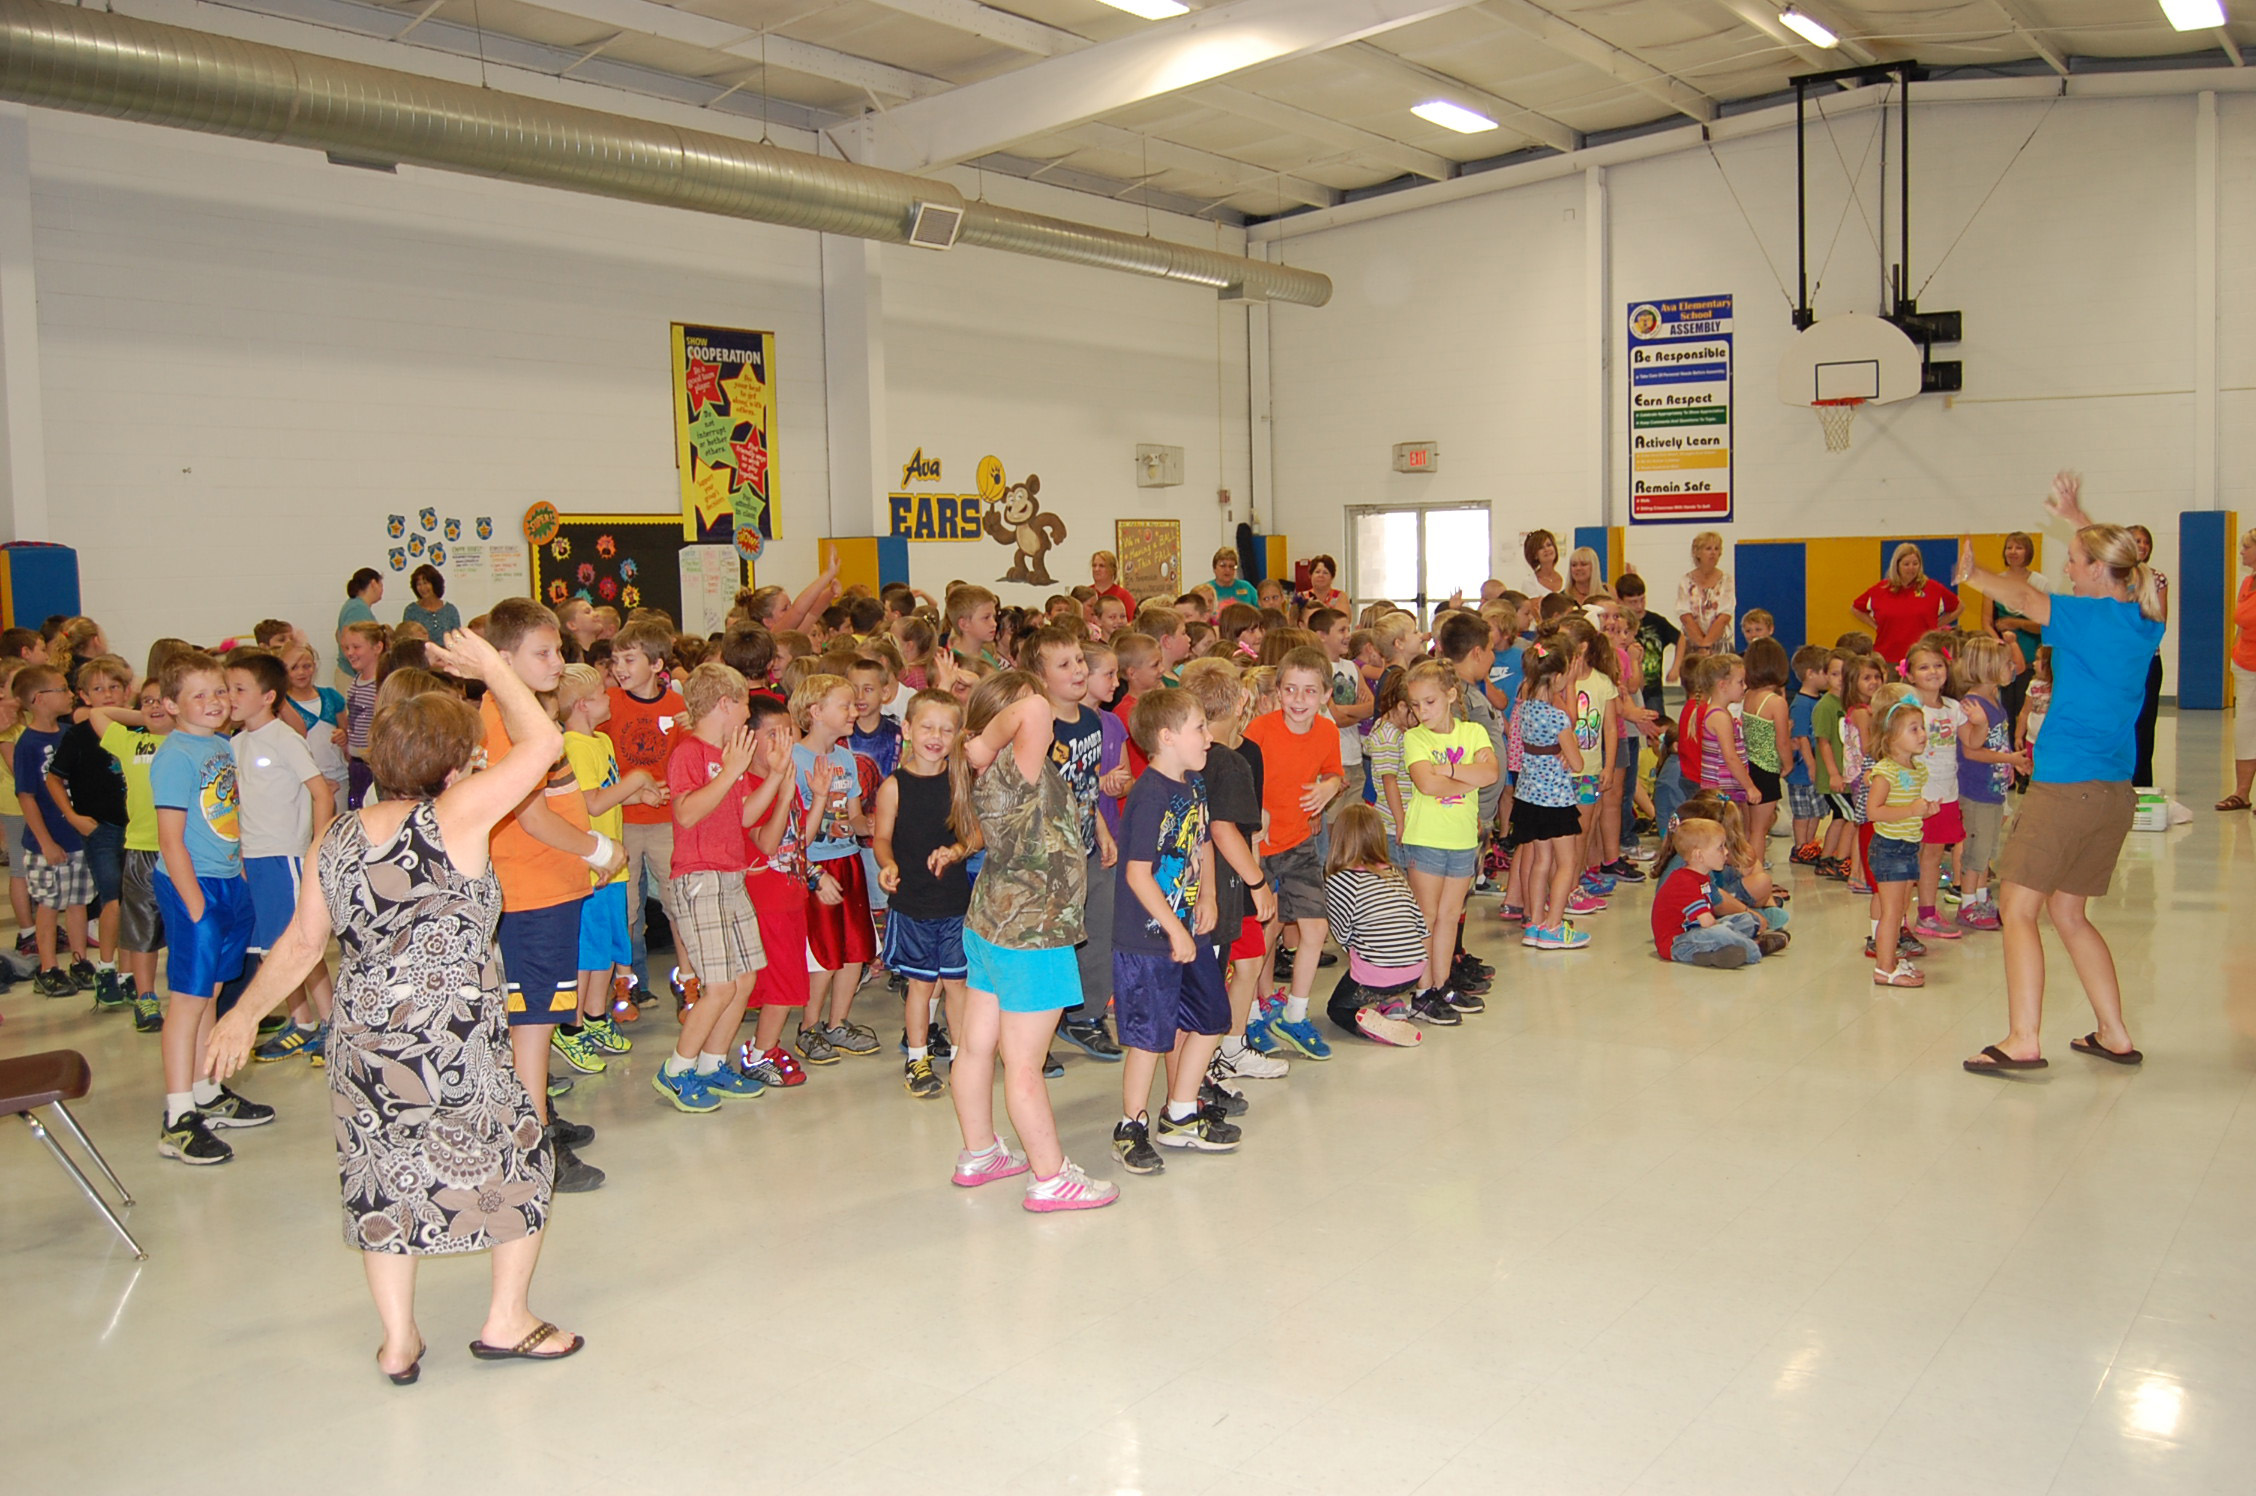 Ava Elementary teacher Susan Trowbridge (left) and Rebecca Smith (right), with University of Missouri Douglas County Extension, lead students in a brisk dance exercise during the Food Power program on Sept. 19.